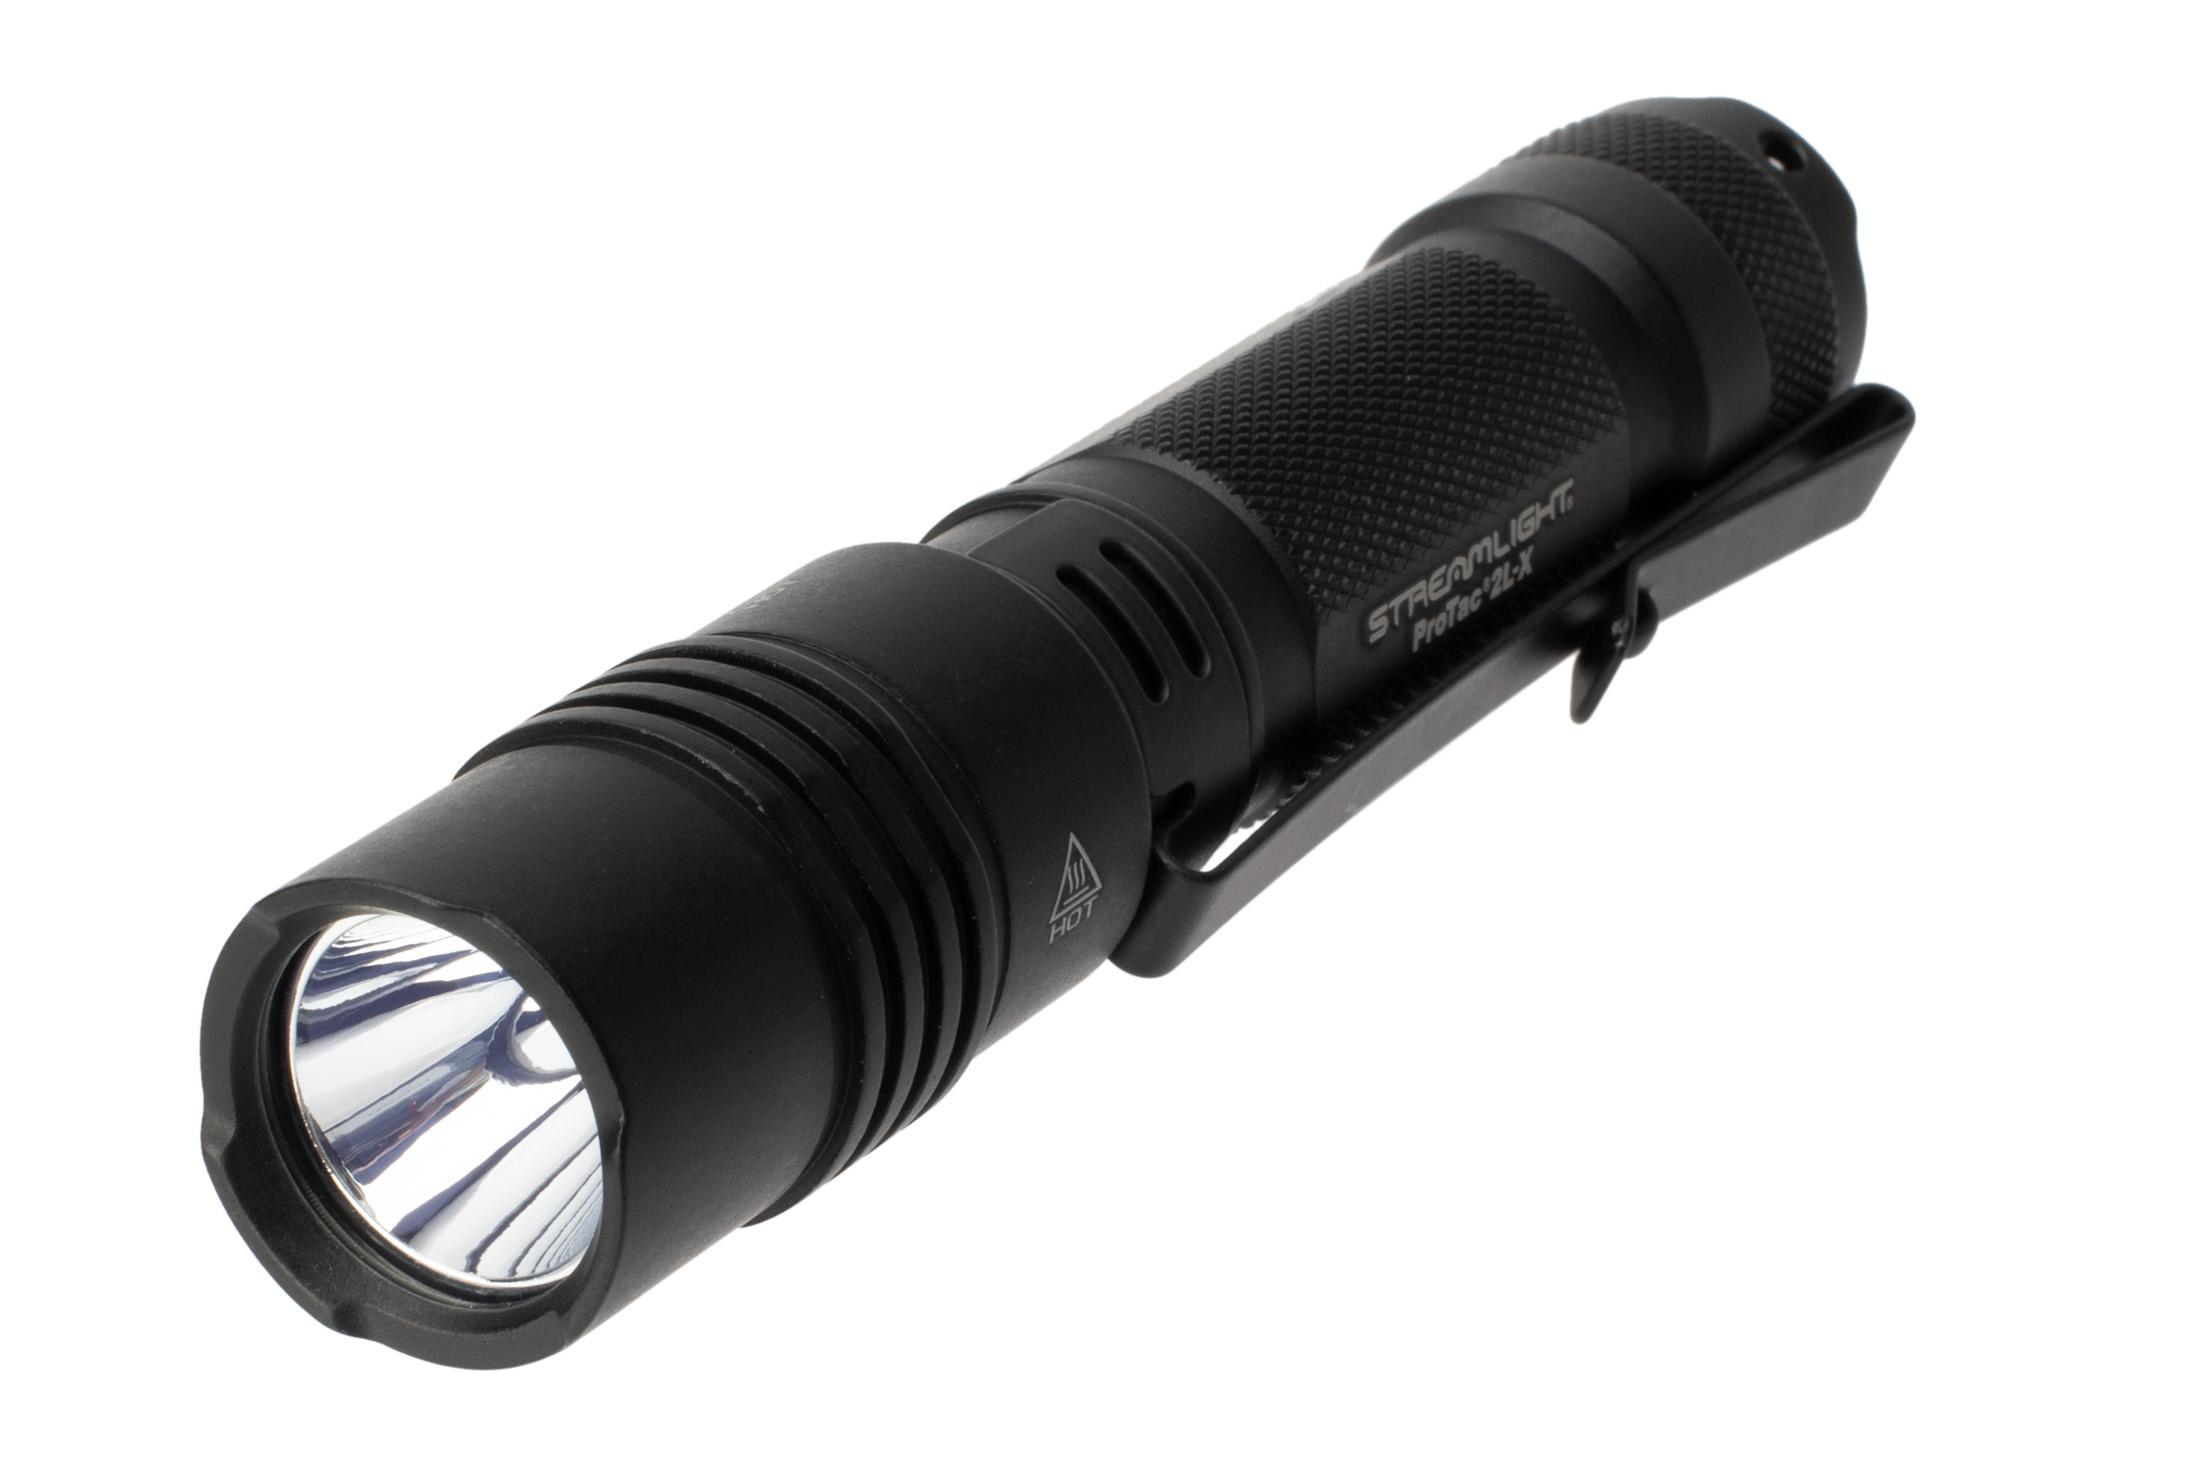 Streamlight ProTac 2L X 500 Lumen Dual Fuel Tactical Flashlight - Clamshell Packaging